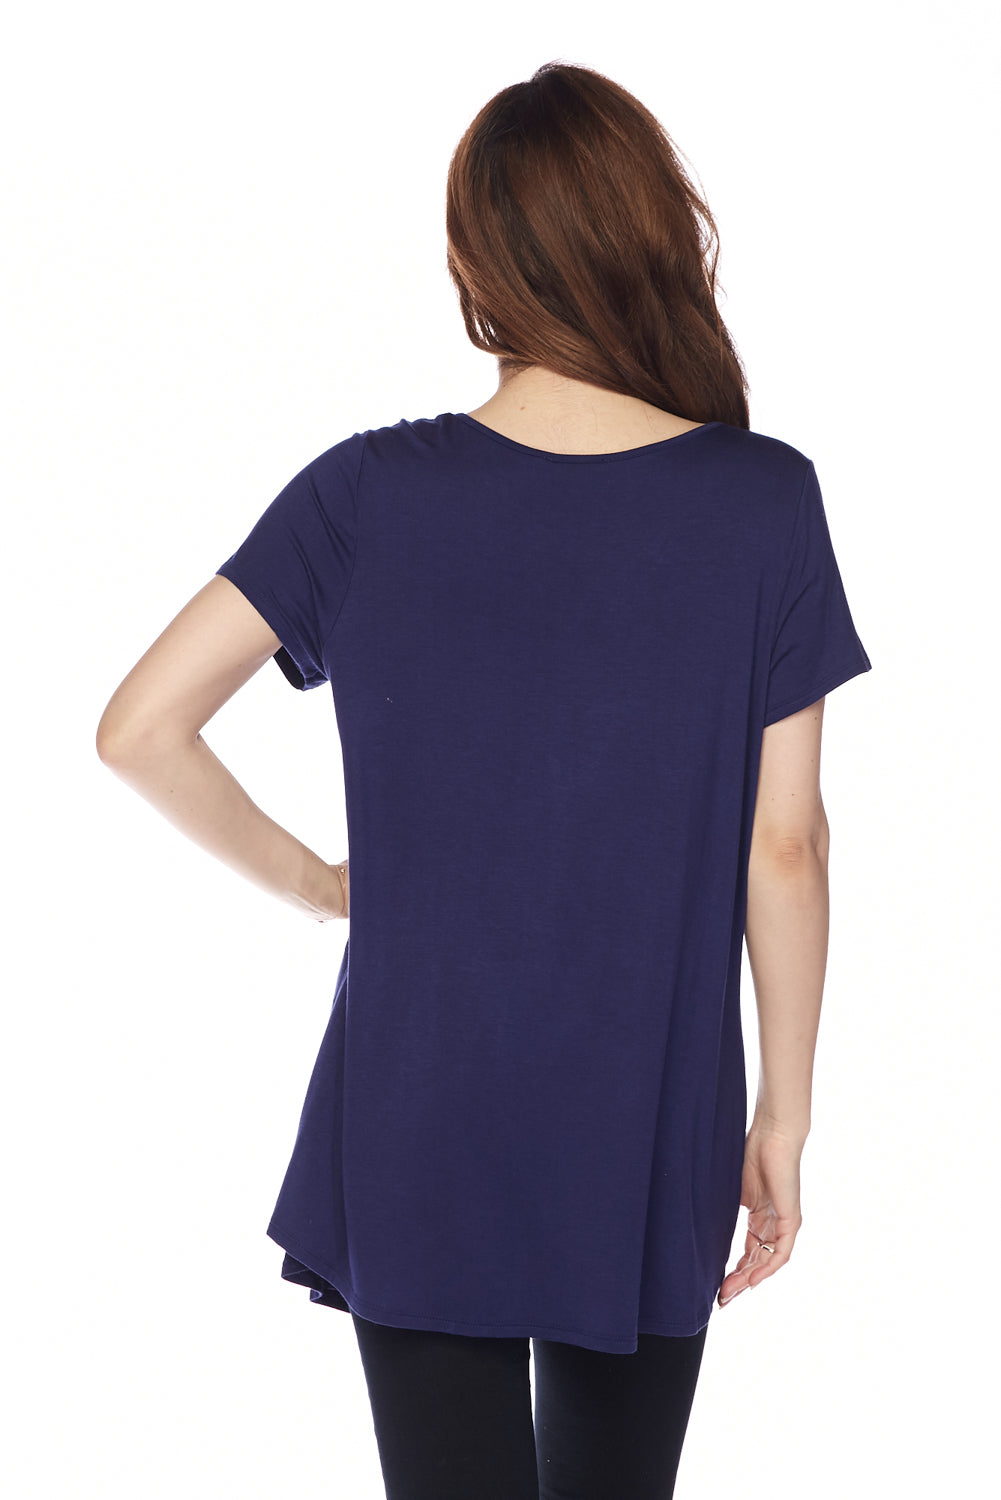 Solid V Neck Criss Cross Tunic Top Plus Size